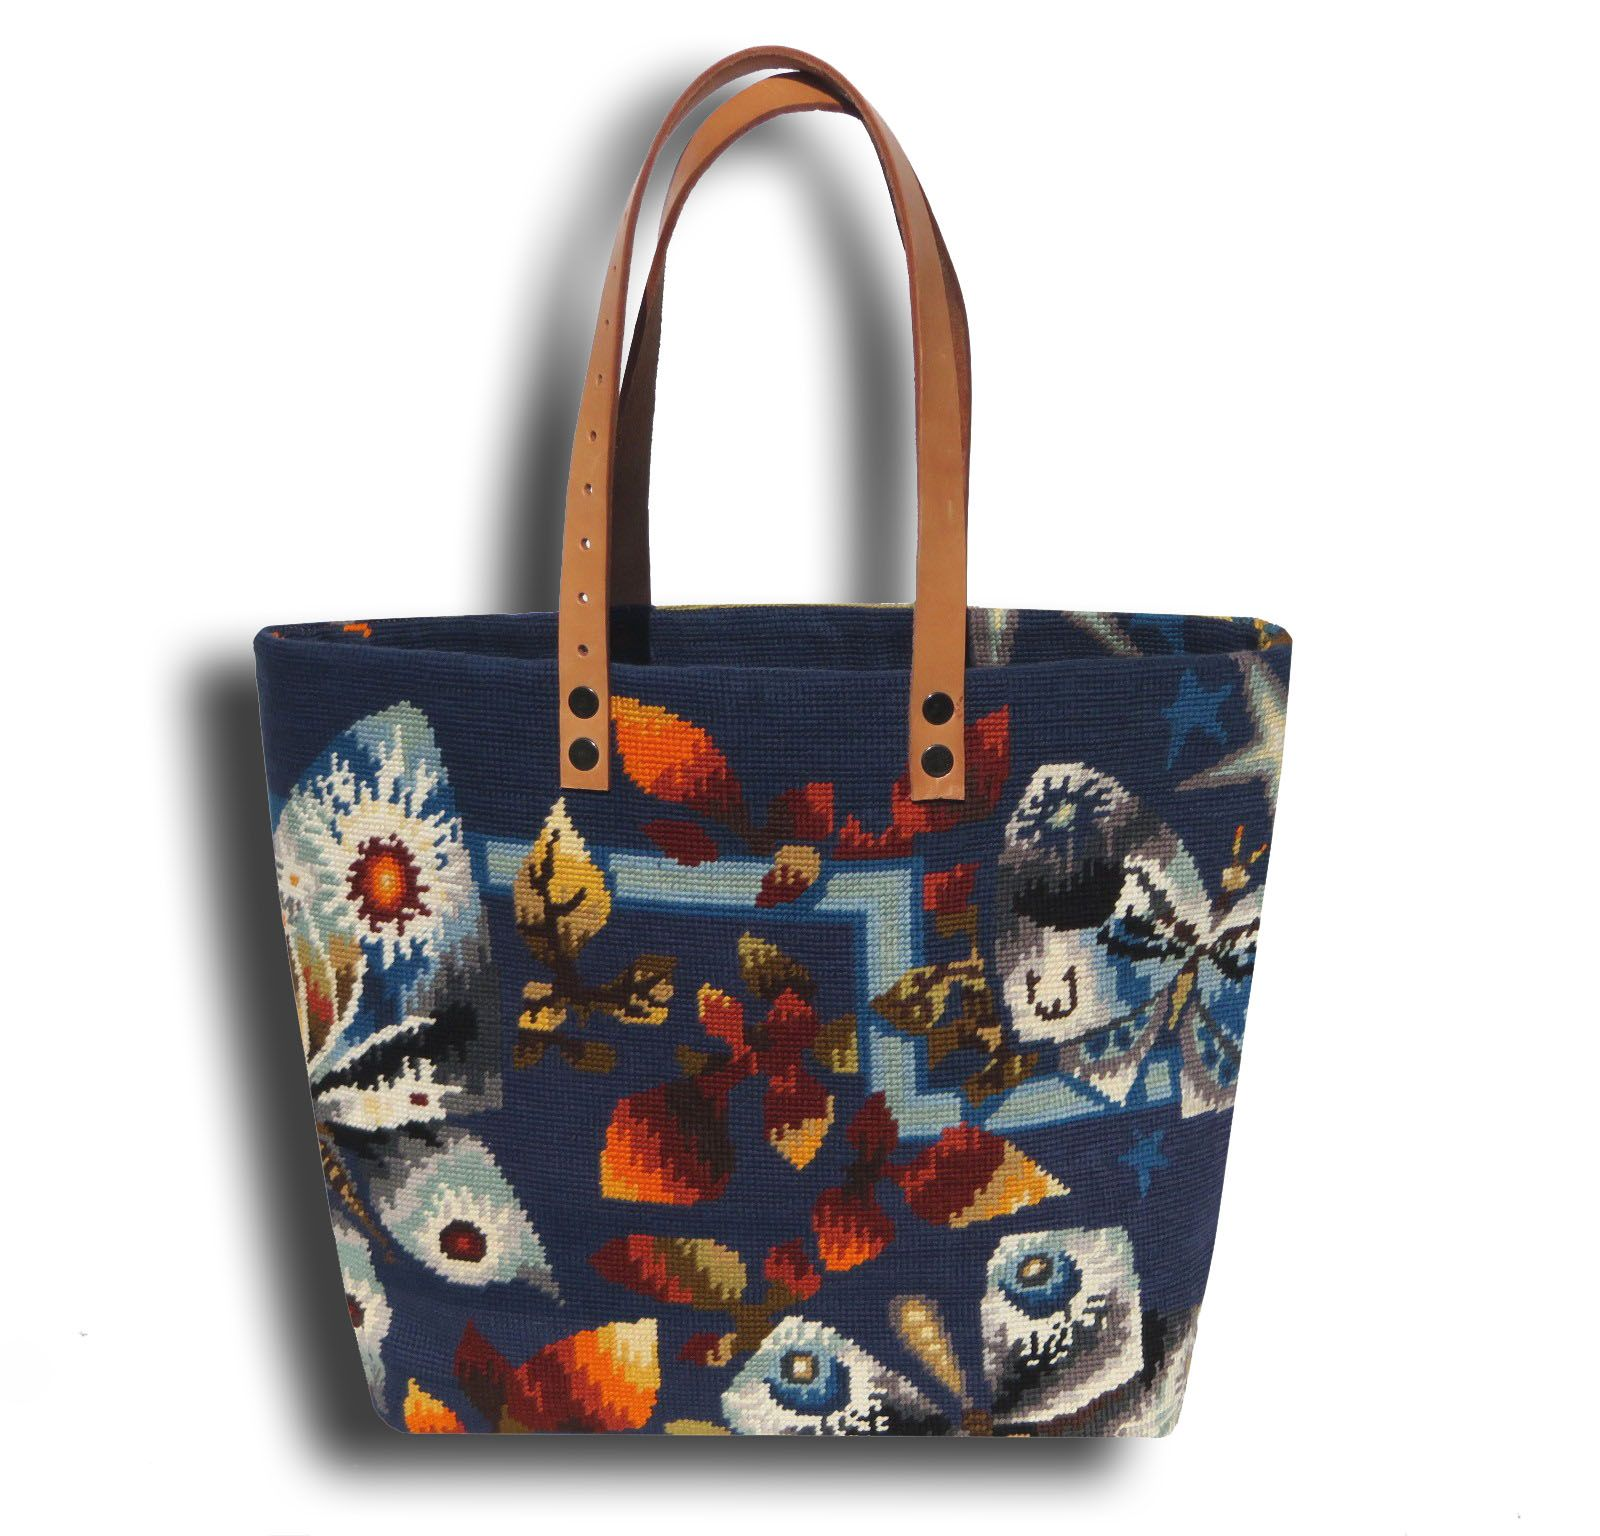 Bags with butterflies leshopdemoz.com